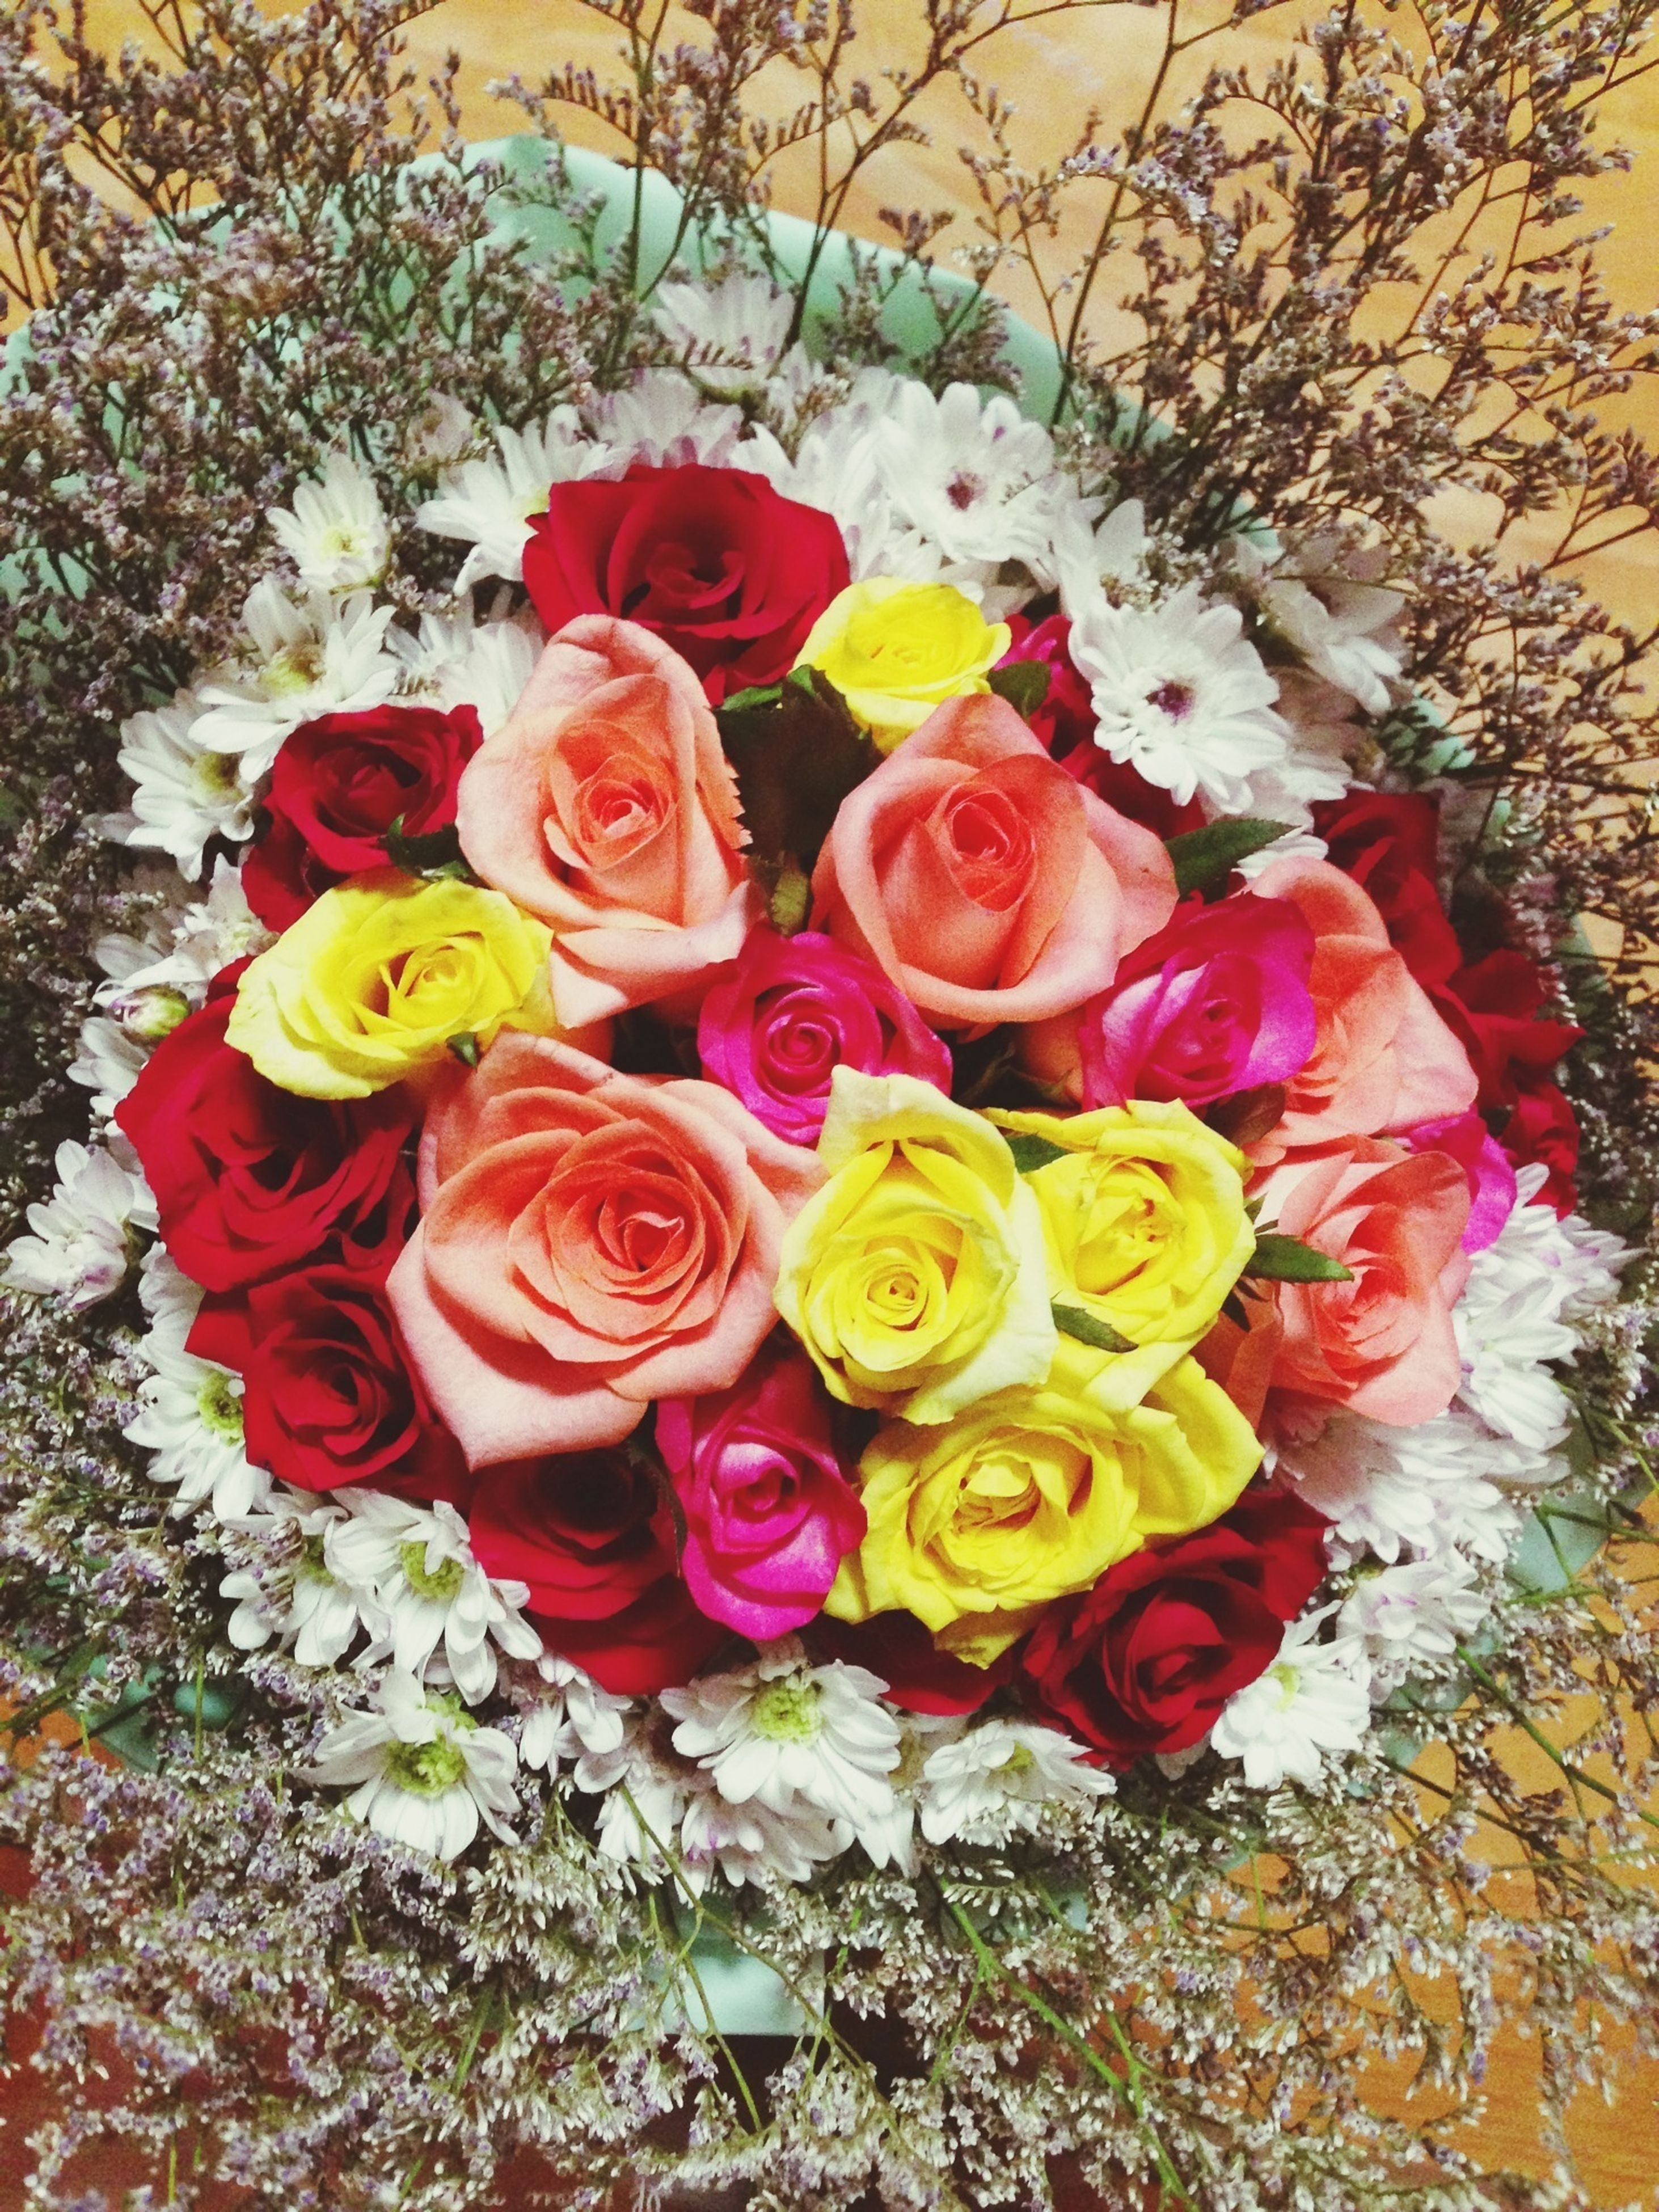 flower, petal, rose - flower, freshness, fragility, beauty in nature, flower head, high angle view, nature, growth, red, rose, blooming, plant, multi colored, pink color, close-up, no people, bouquet, day